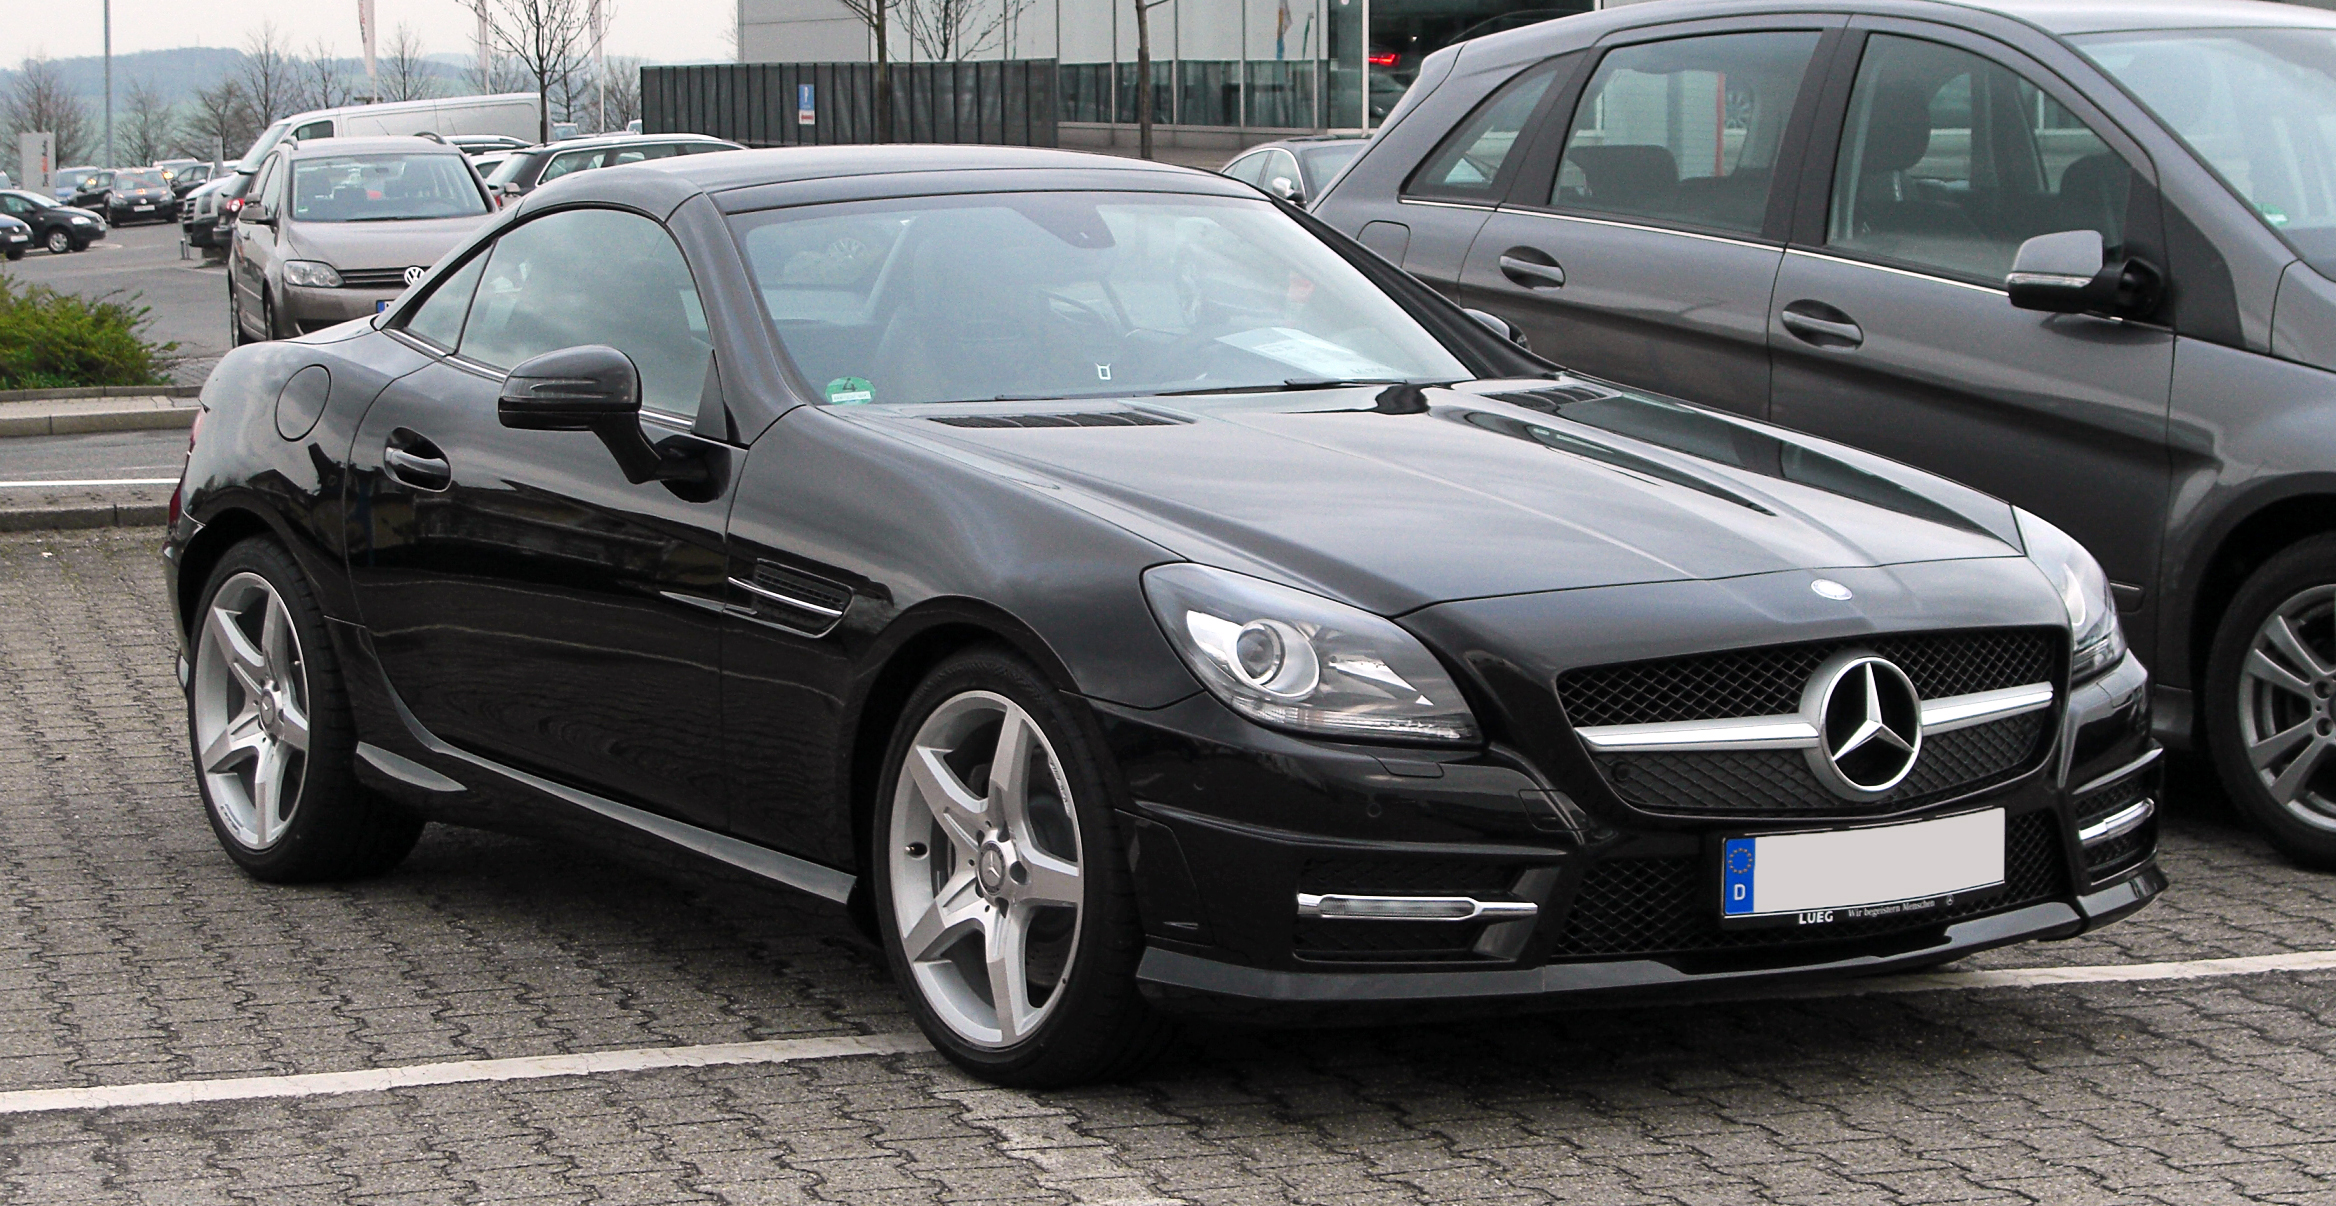 mercedes-benz slk 200 blueefficiency-pic. 1